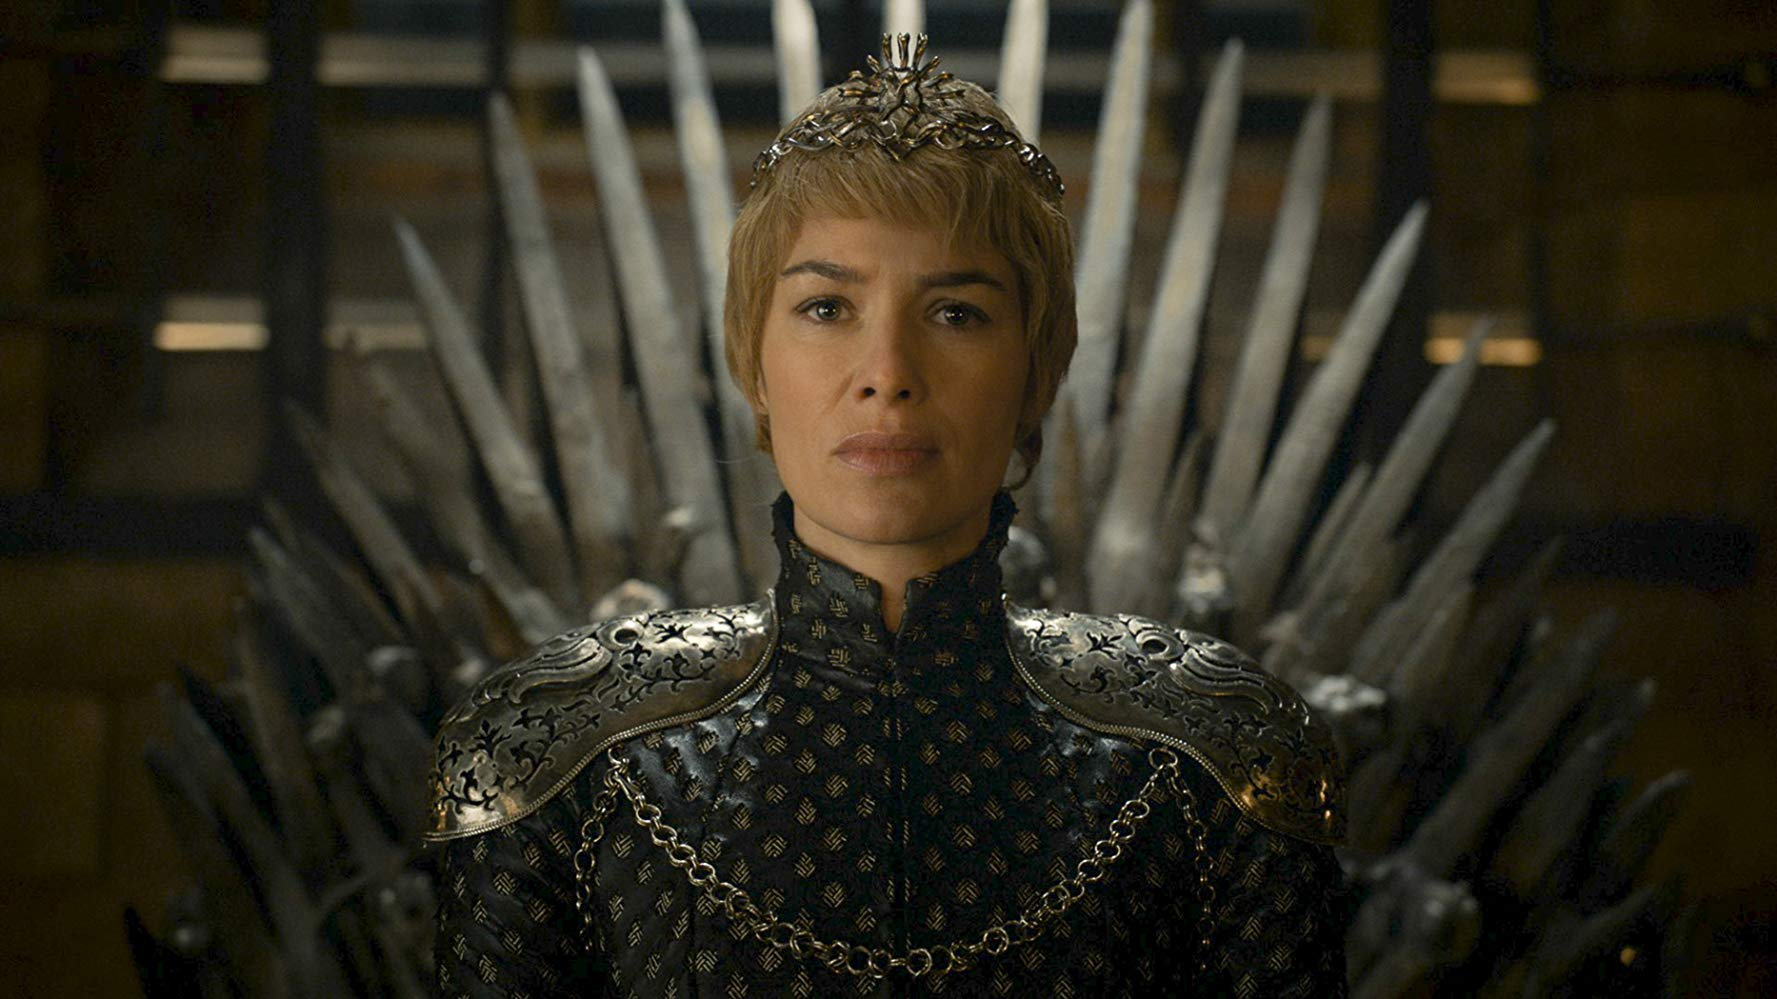 Lena Headey as Cersei Lannister in Game of Thrones. Source: IMDB